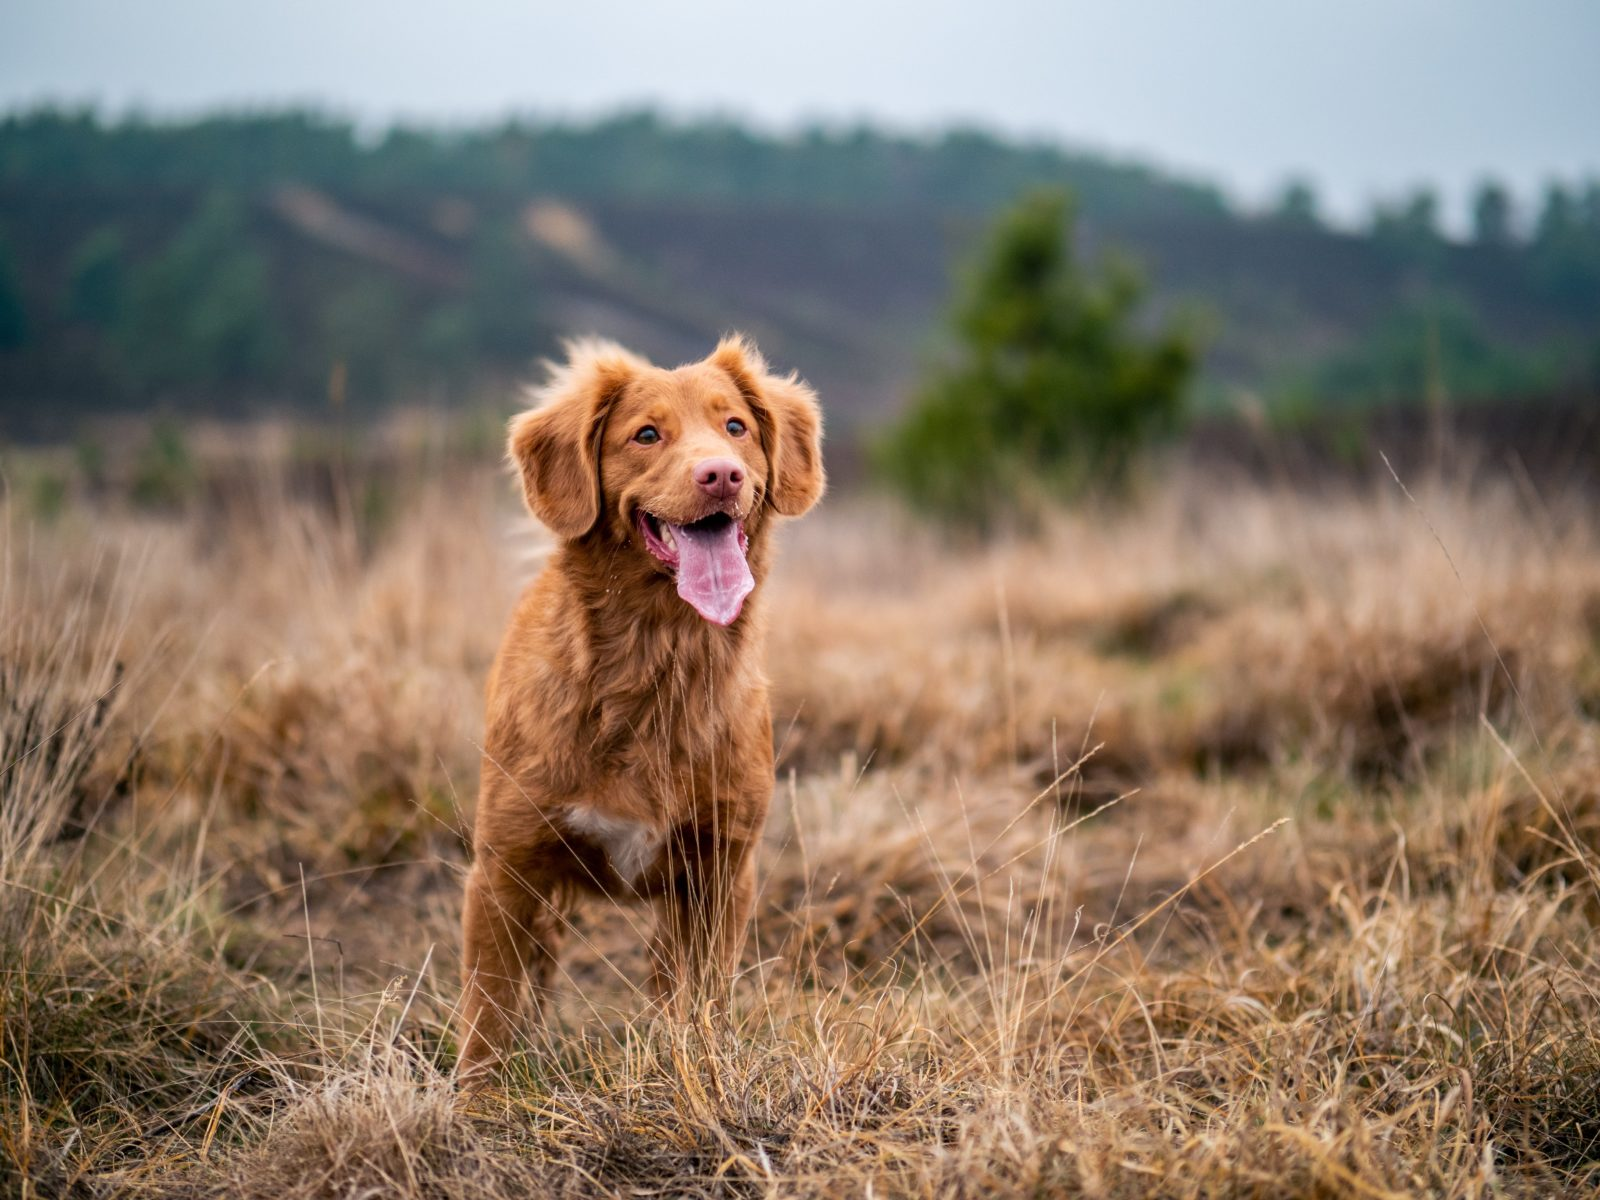 Elevate your pet photography with these 7 tried and tested tips